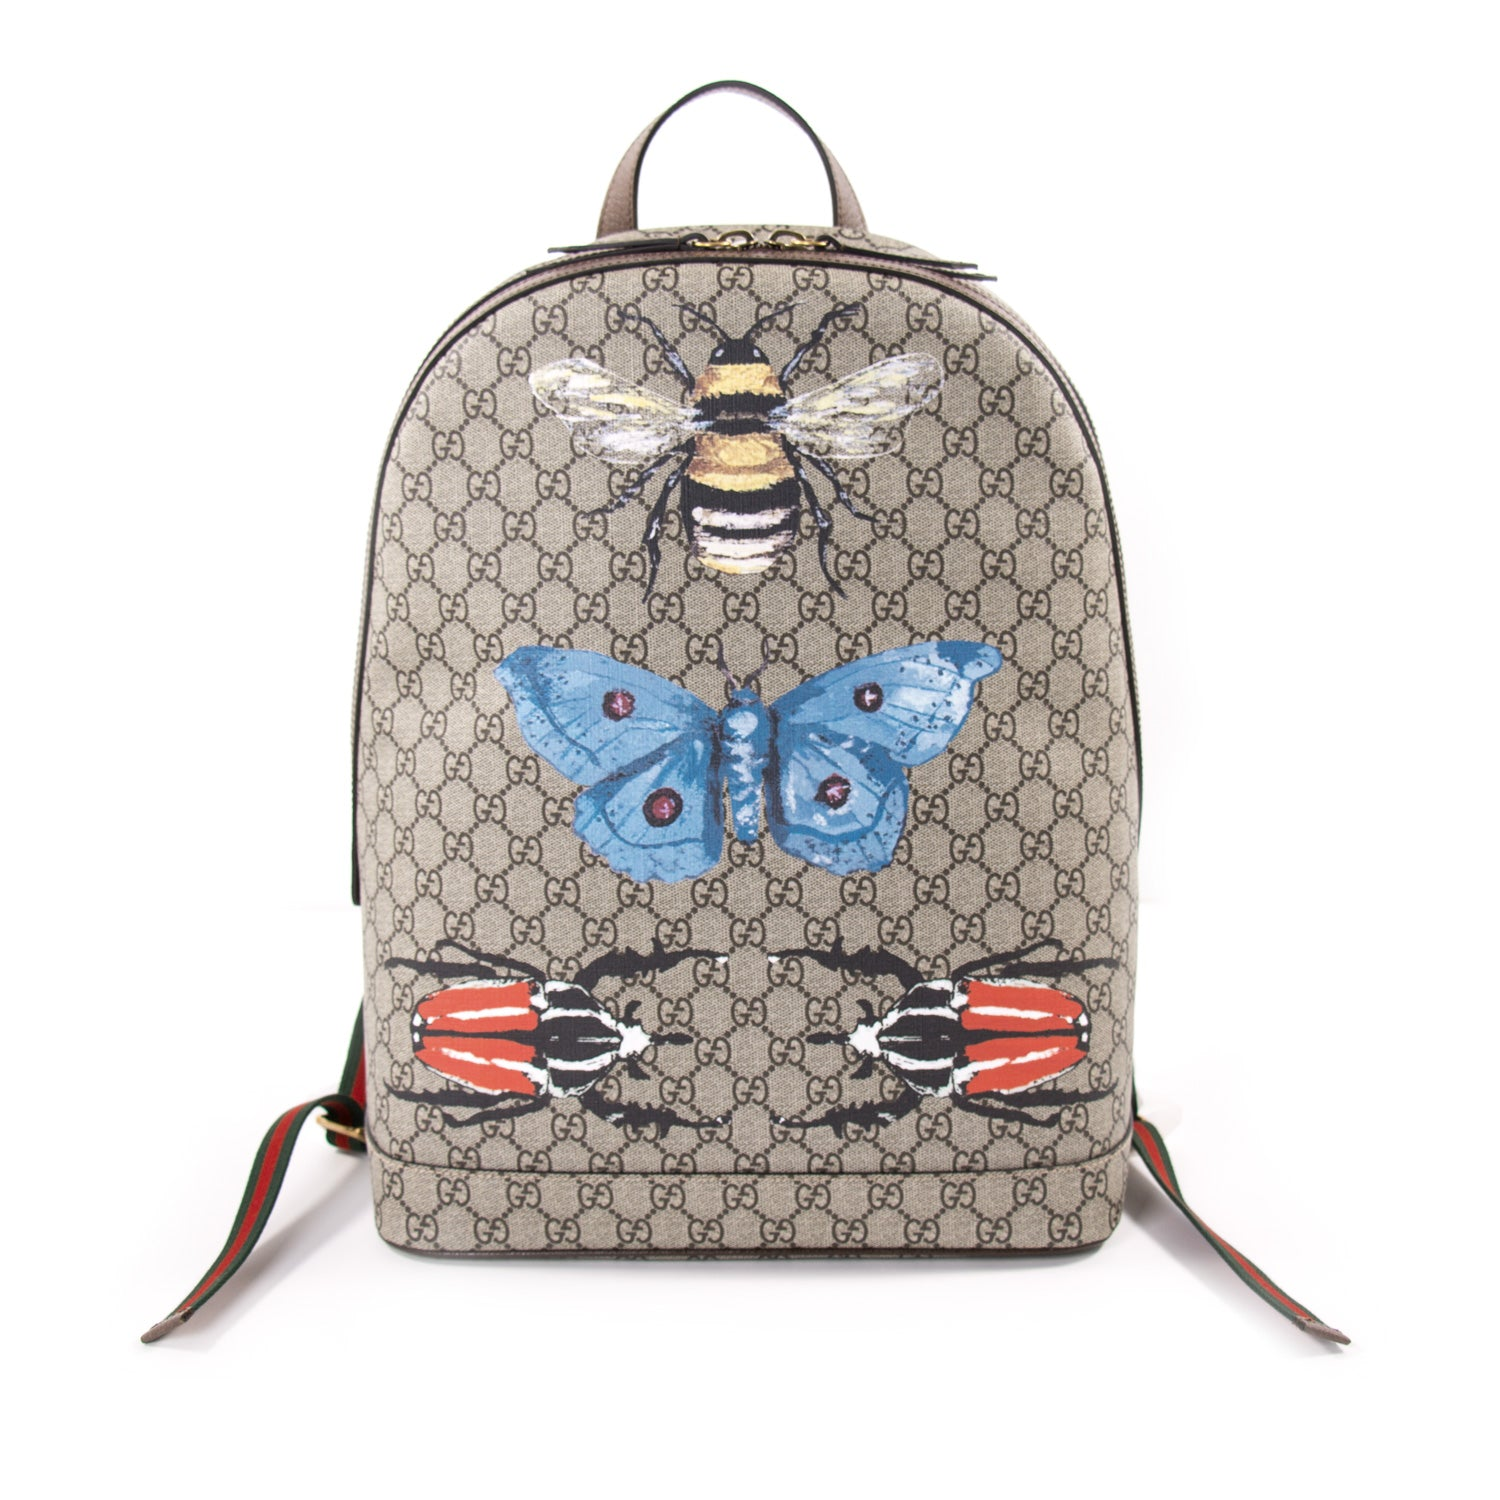 a2f77f06d3b7 Shop authentic new and pre-loved New Pre-Owned Collection of Travel Bags  online at revogue